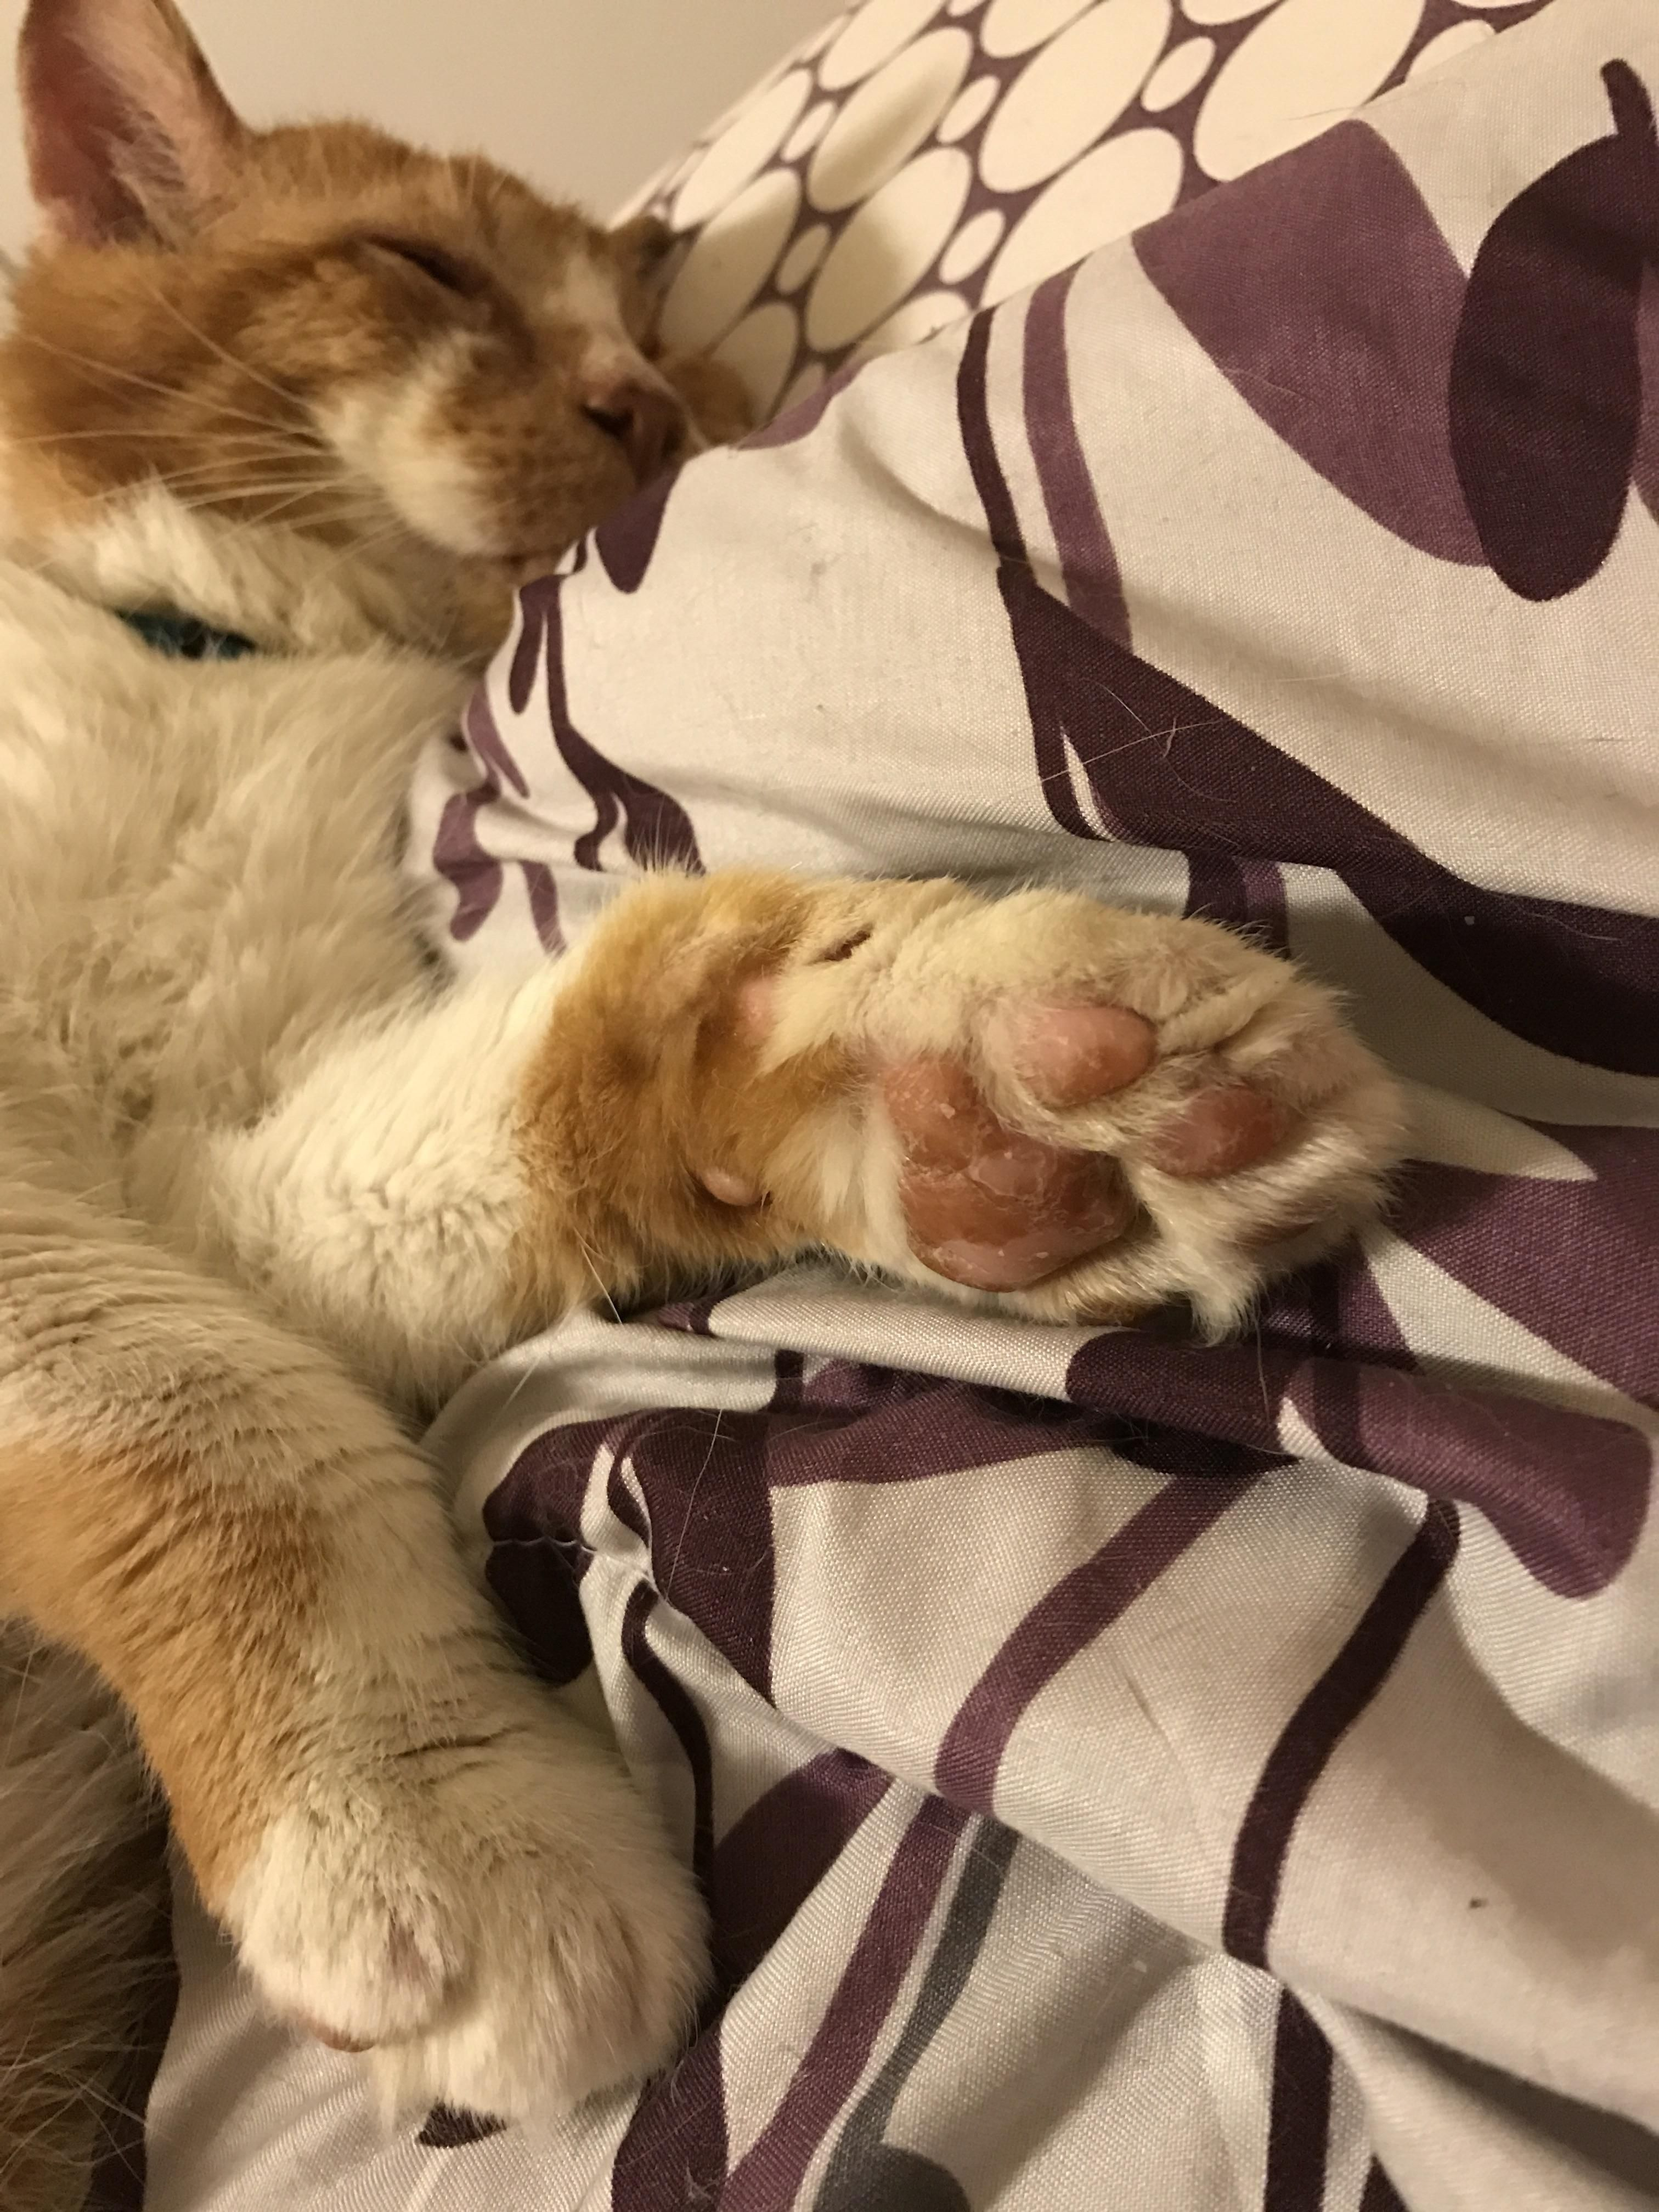 Could I Please Have Recommendations For This Dry Cracked Kitty Paw Cat Paws Paw Kitty